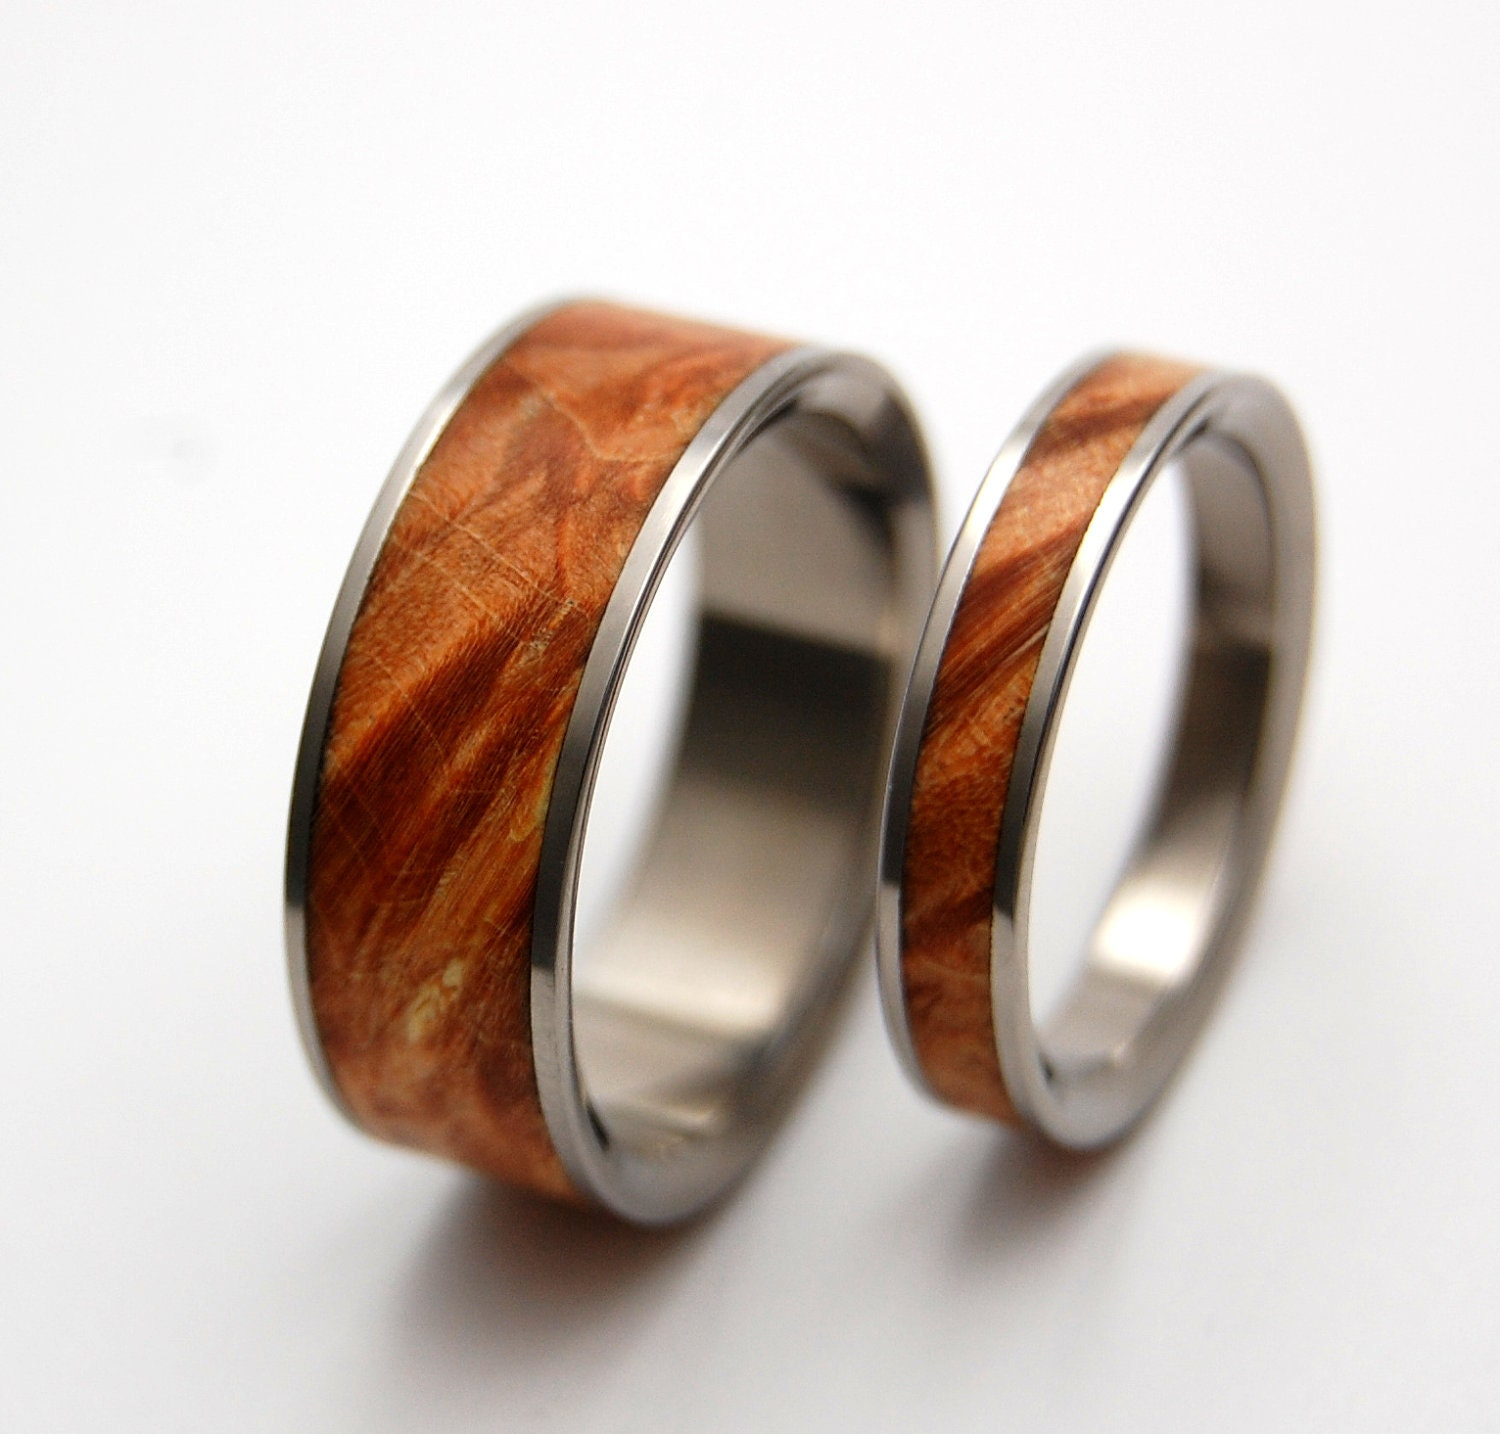 Wood Mens Wedding Bands: Wedding Rings Titanium Rings Wood Rings Mens Rings